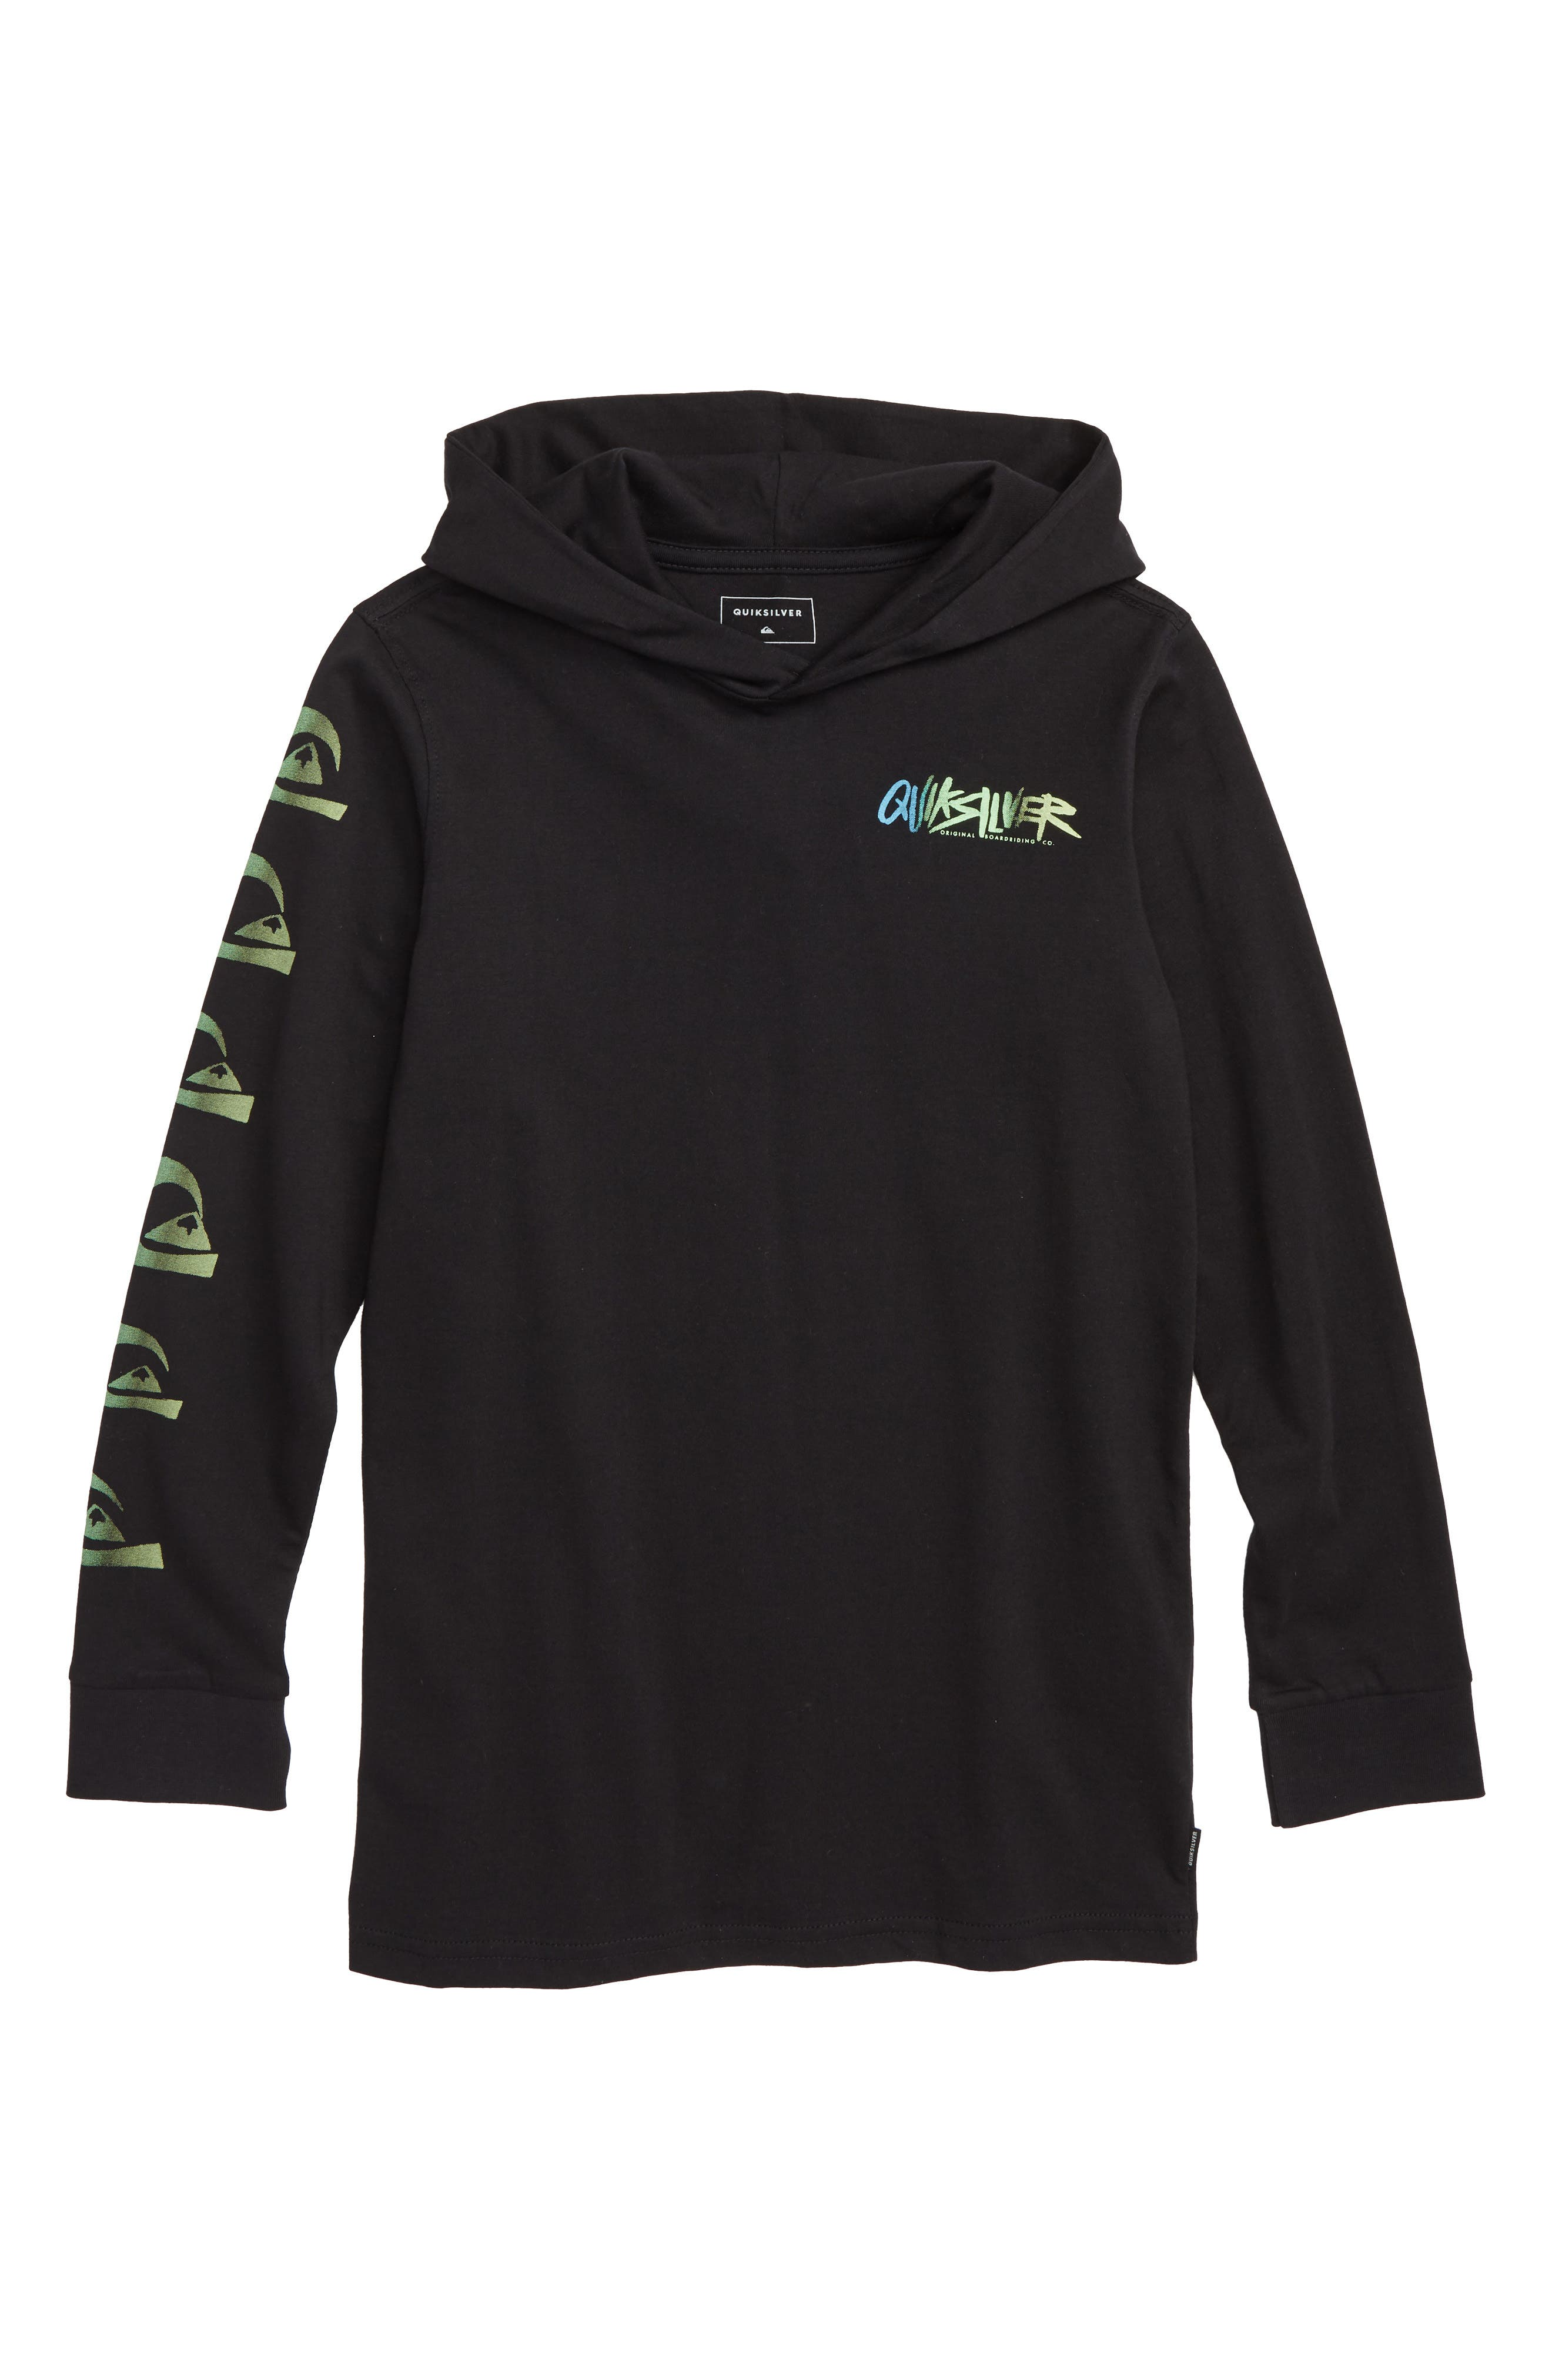 QUIKSILVER,                             Rough Right Hoodie,                             Main thumbnail 1, color,                             002